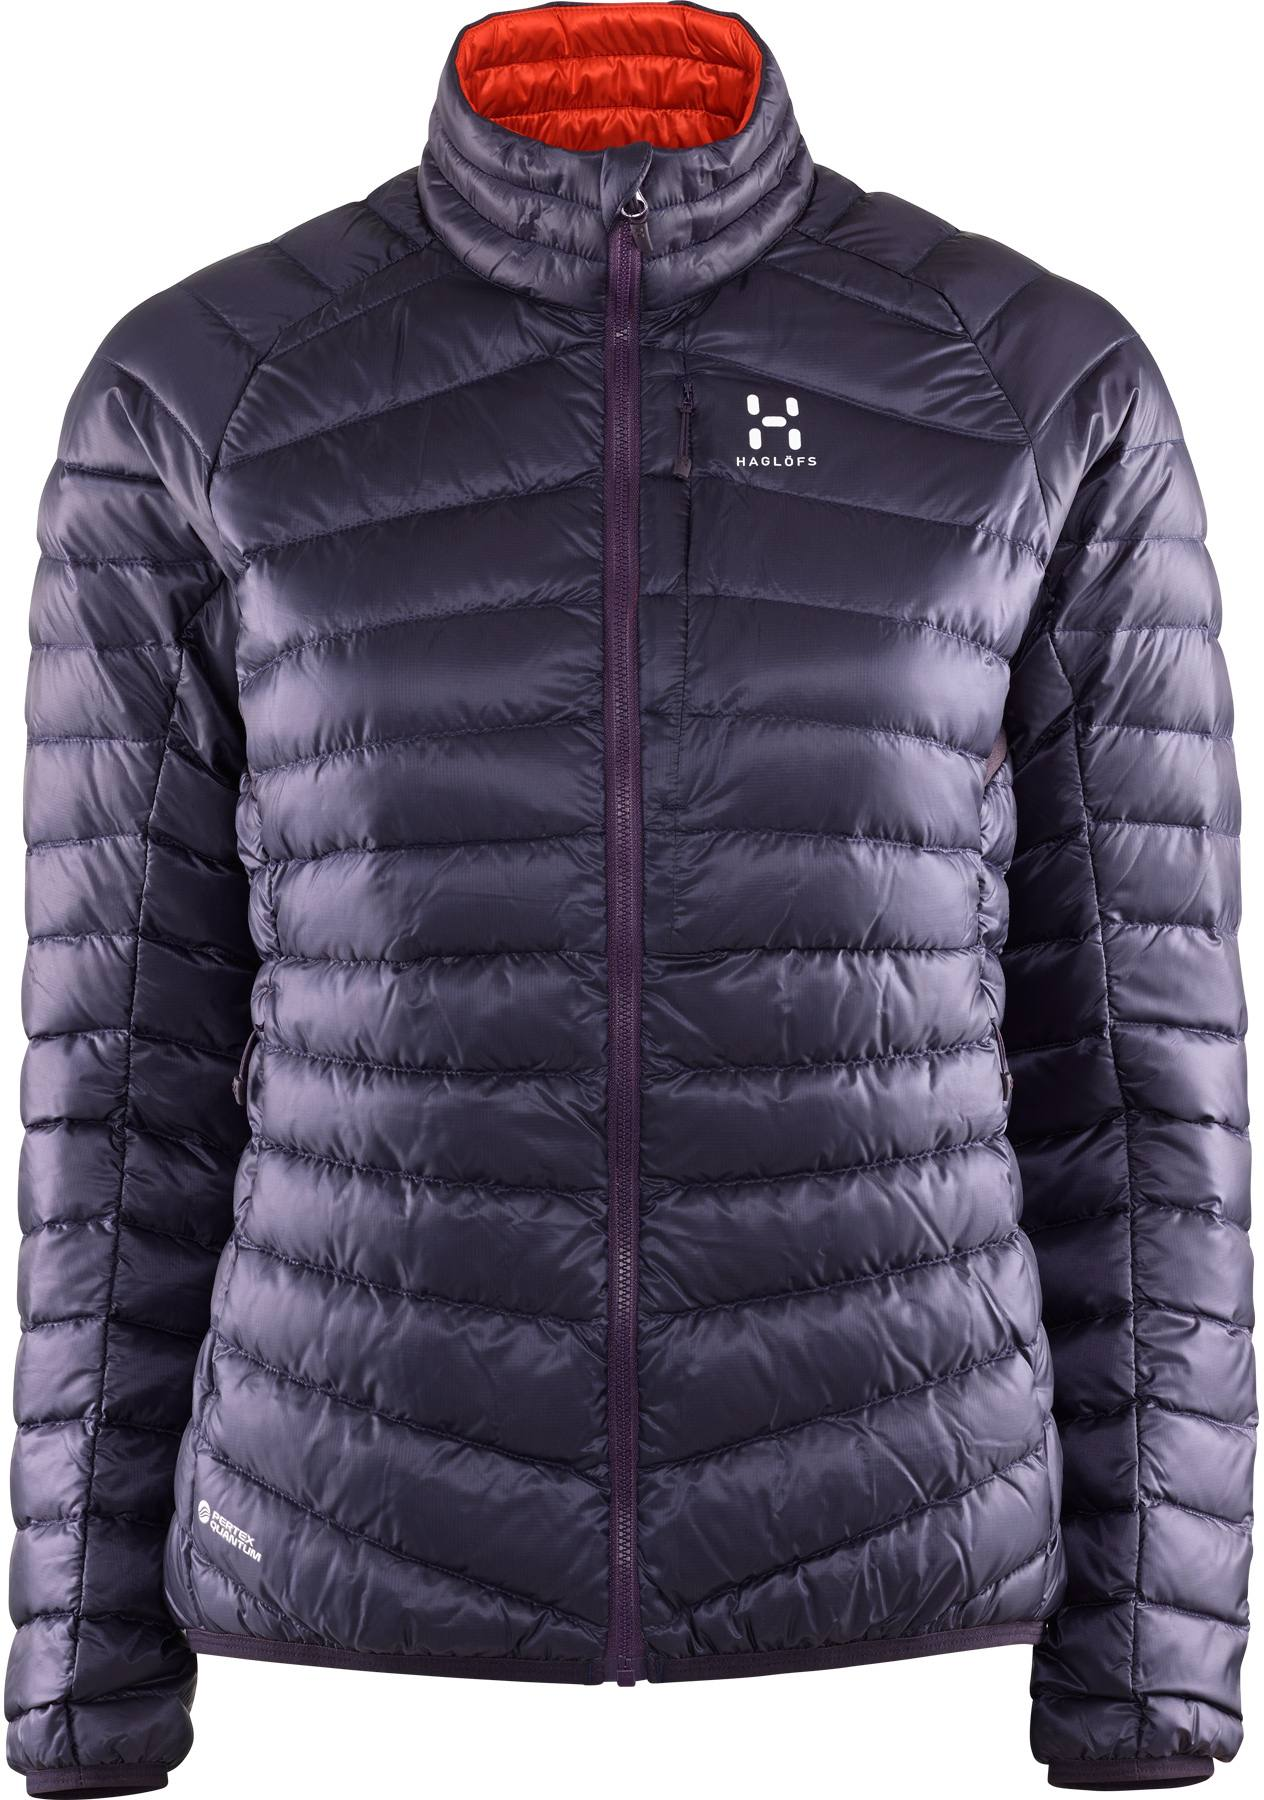 db65033d29c3 Haglöfs Essens III Down Jacket Women | Scandinavian Outdoor